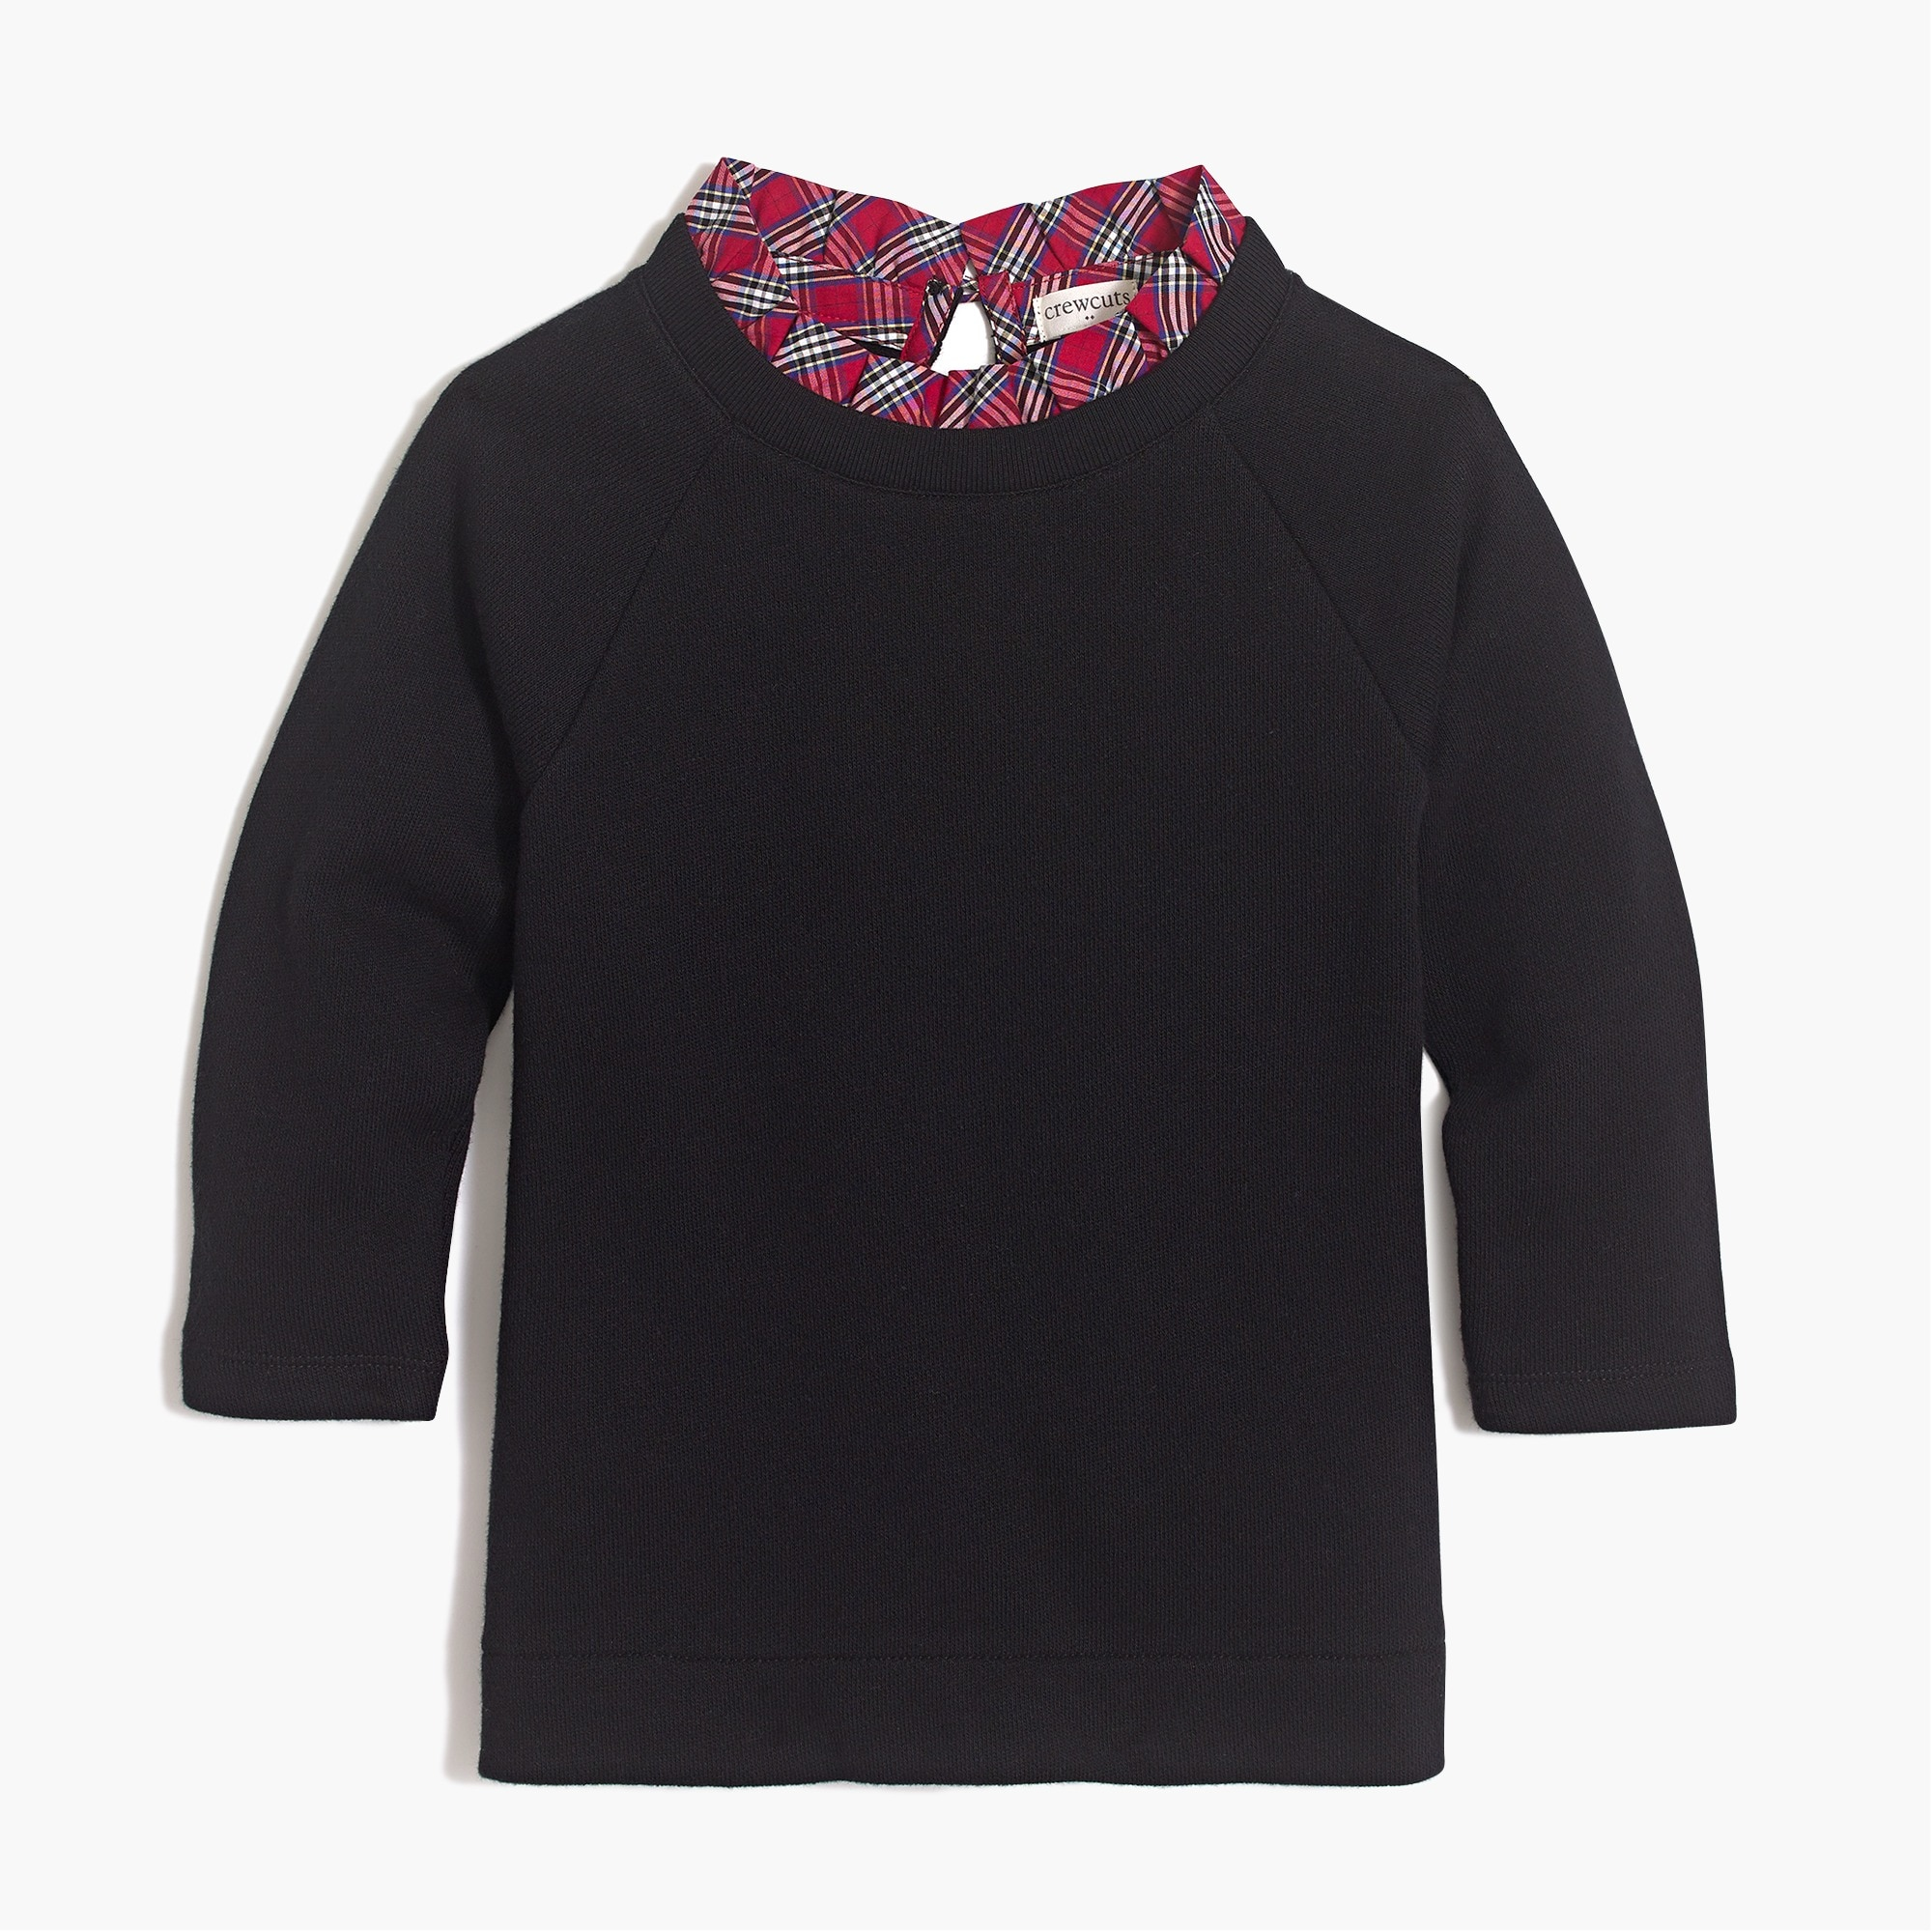 girls' ruffled-collar sweatshirt : factorygirls sweatshirts